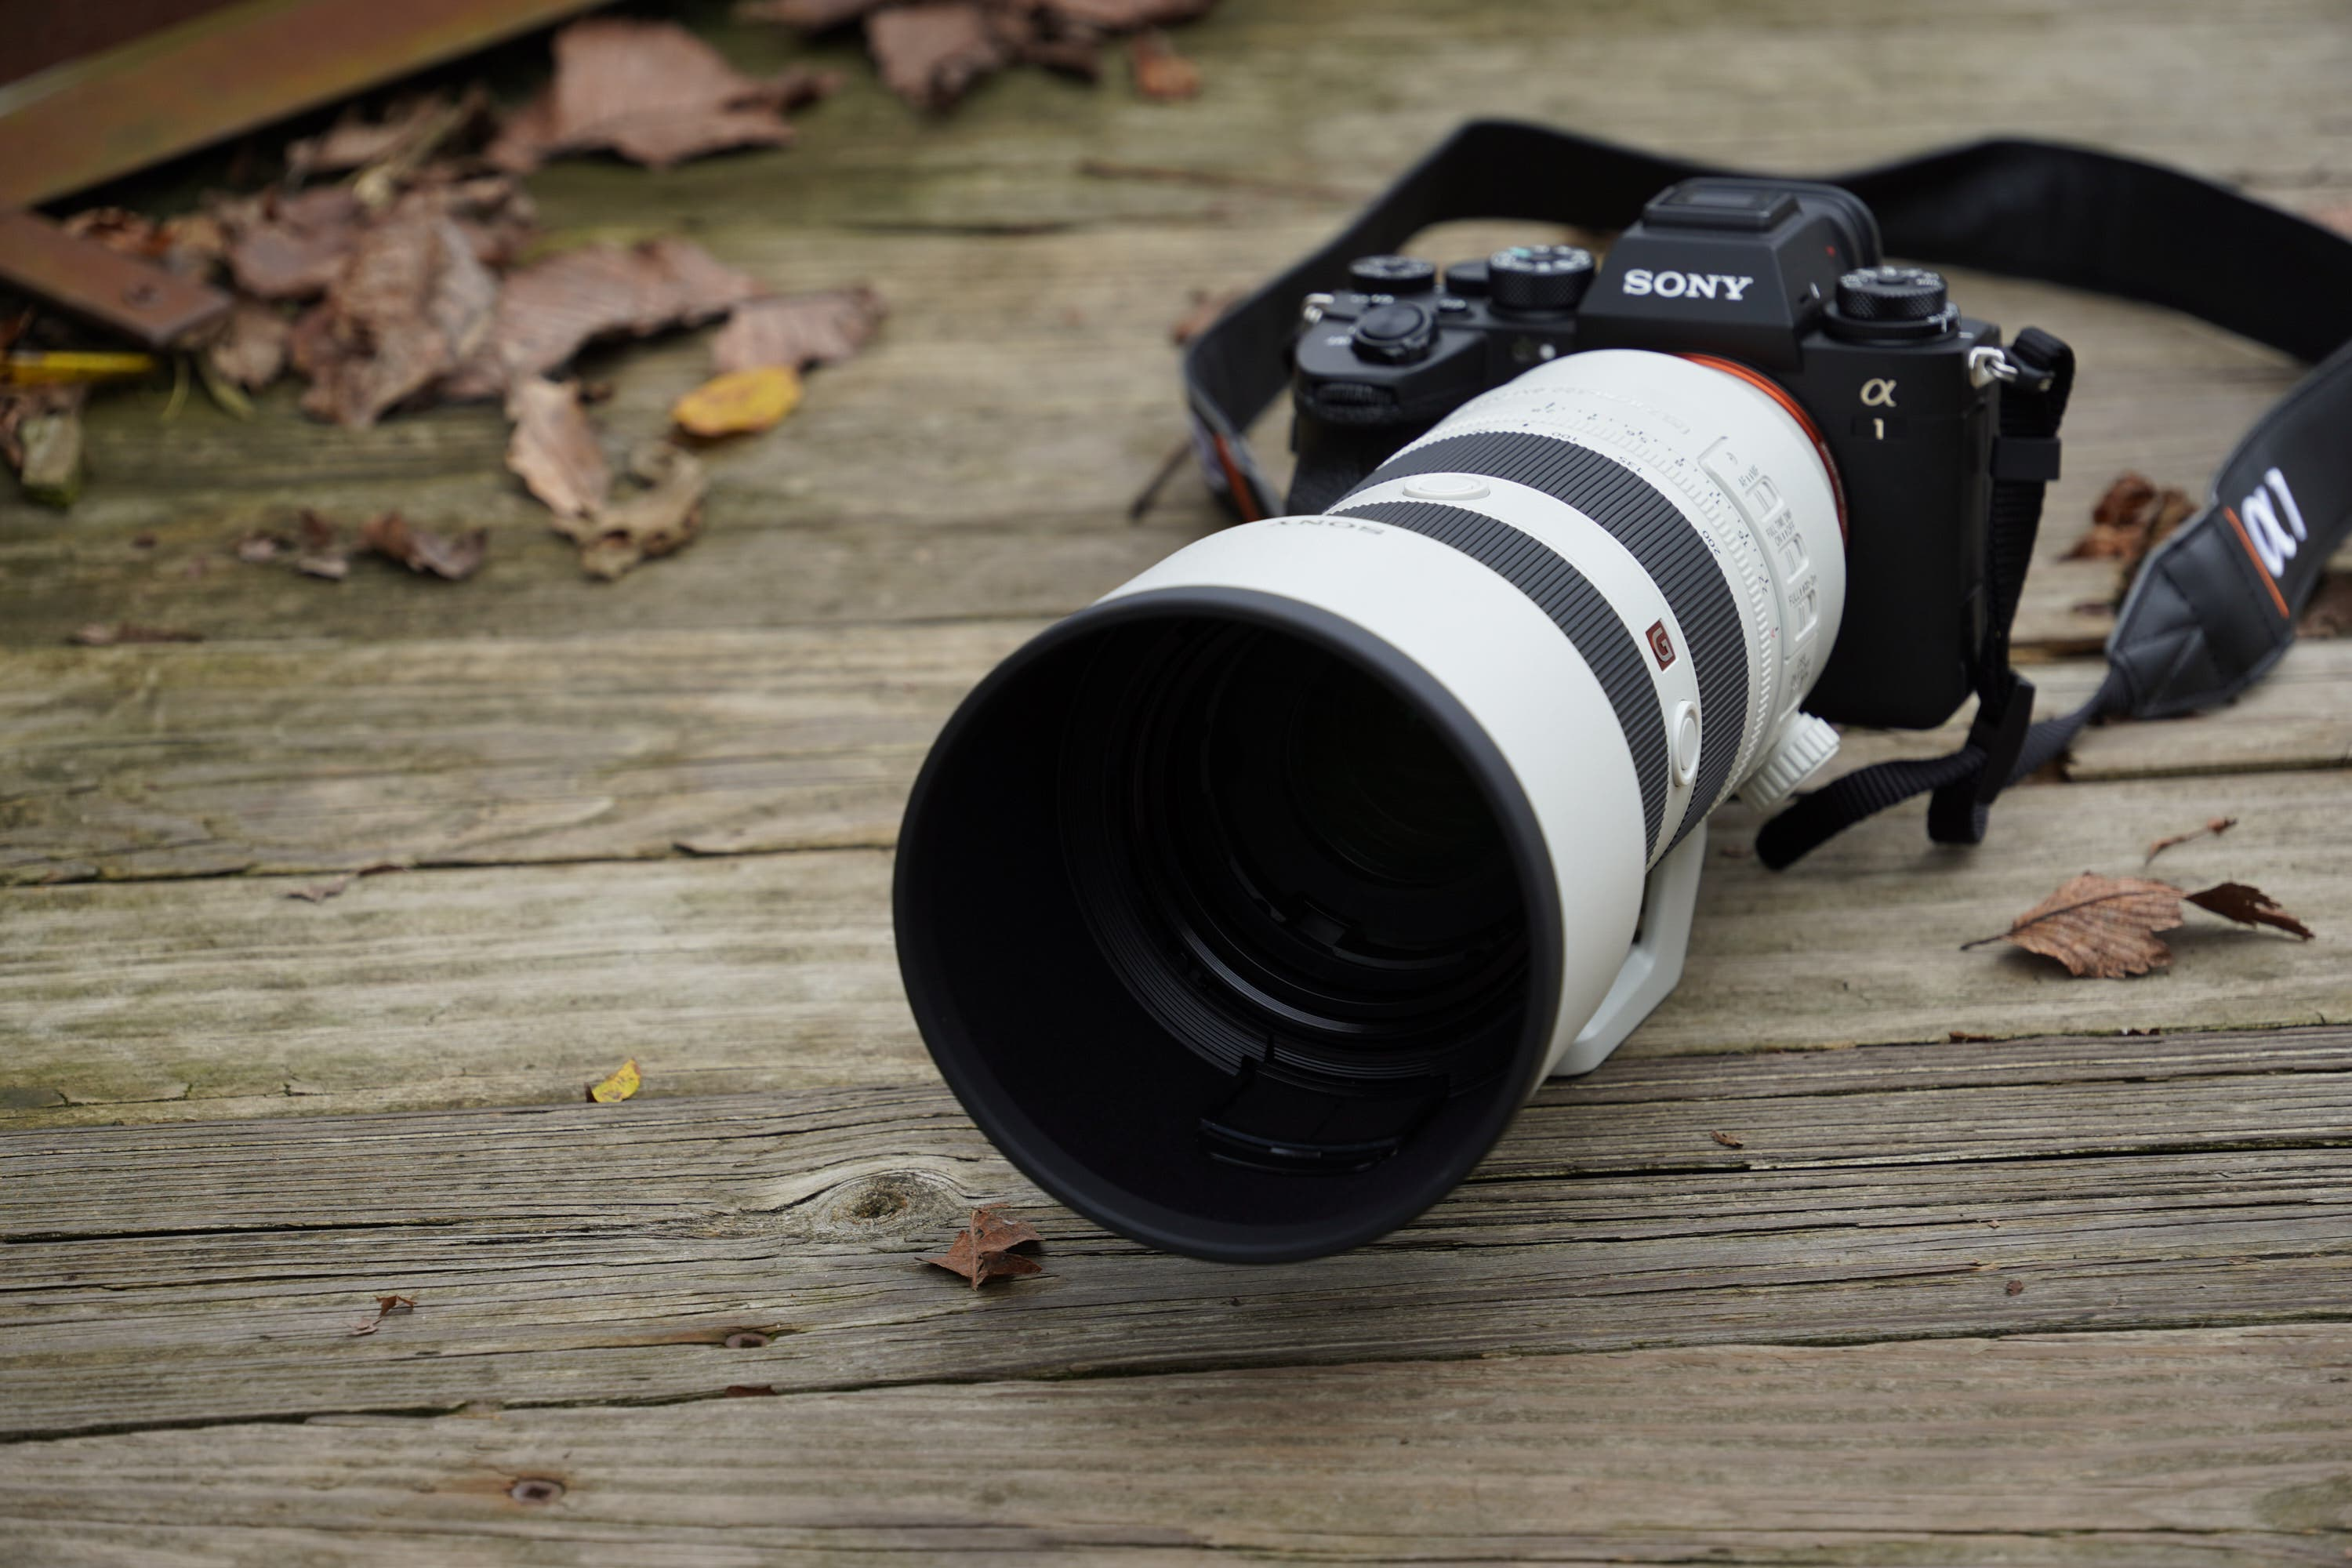 Improved and Really Fantastic: Sony 70-200mm F2.8 GM OSS II Review